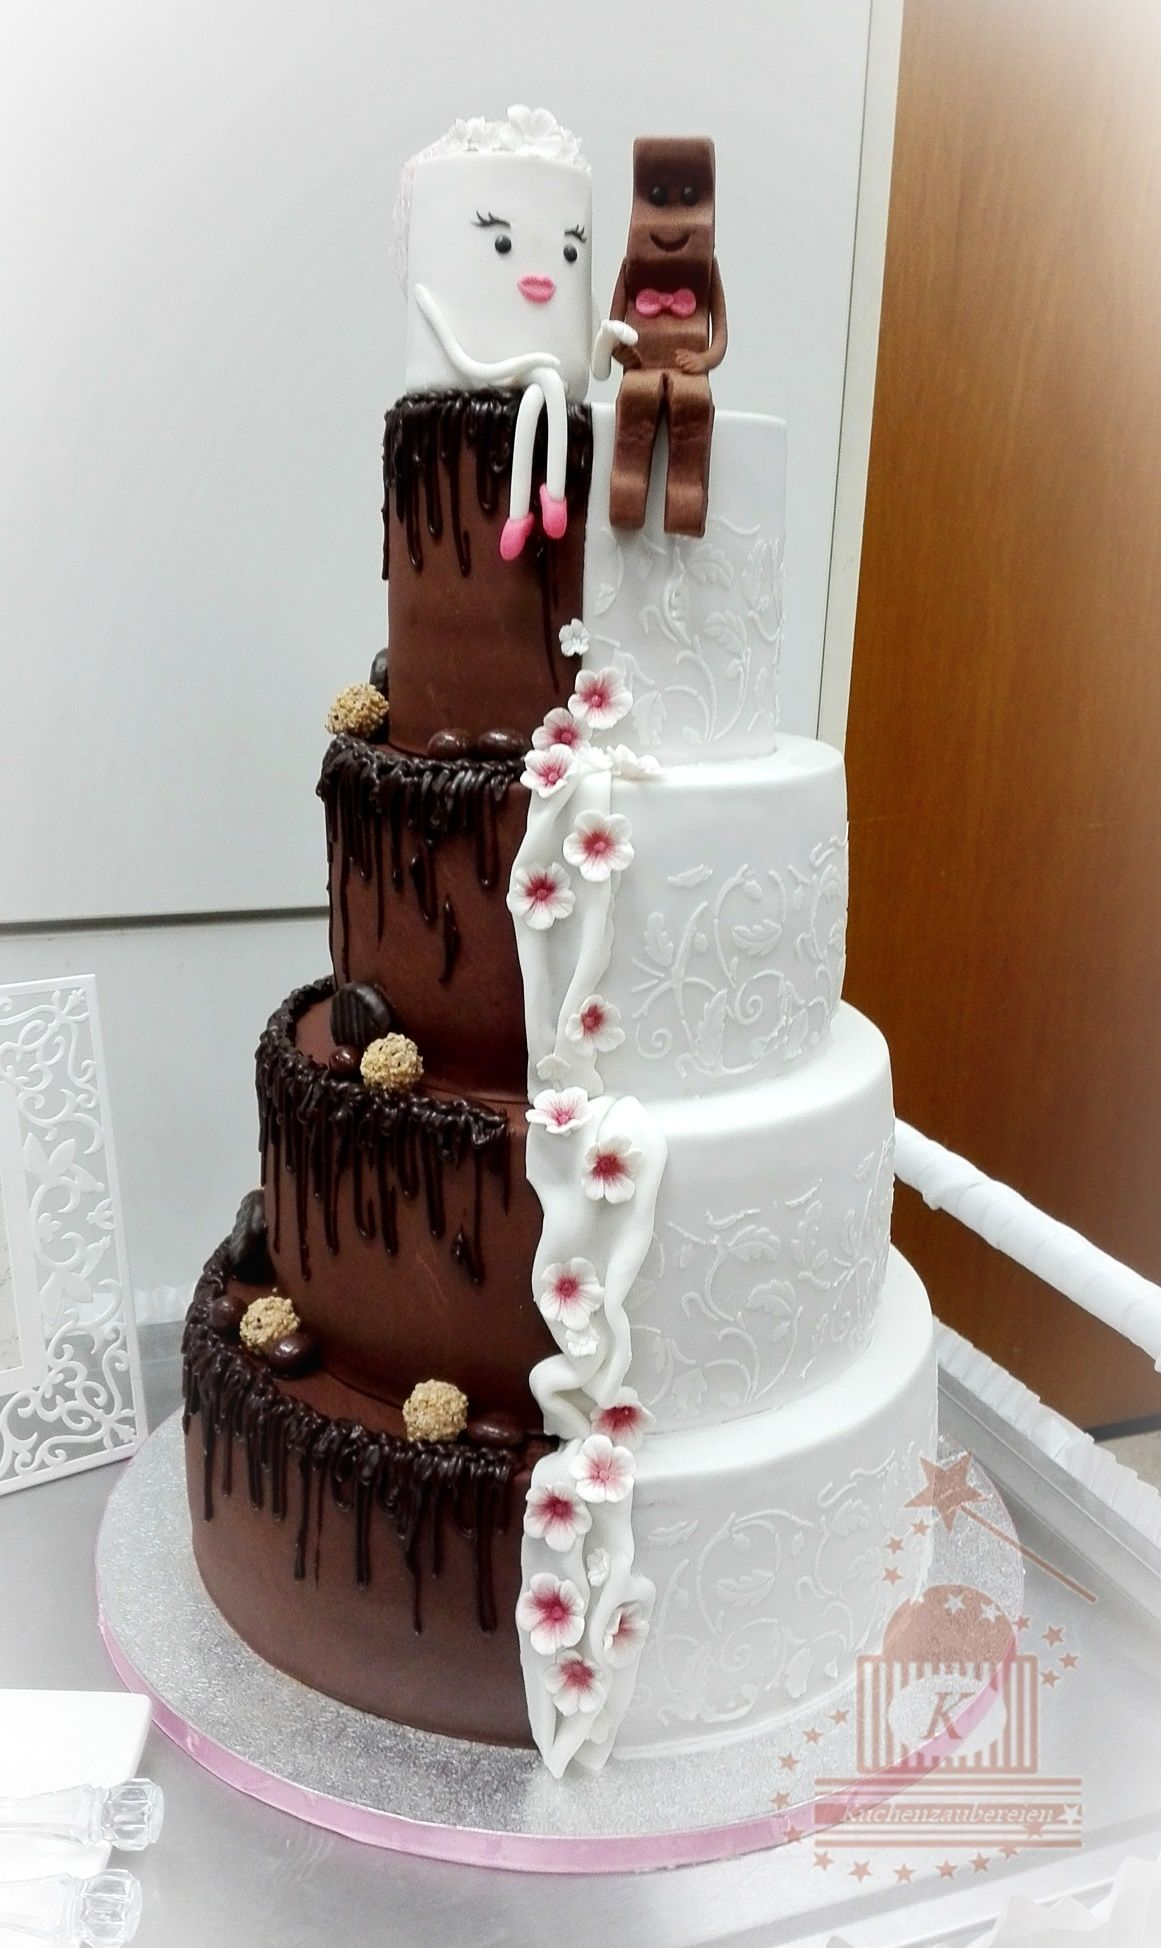 Kinderschokolade Riegel Kuchen Wedding Cake Milky And Schoki Wedding Cakes In 2019